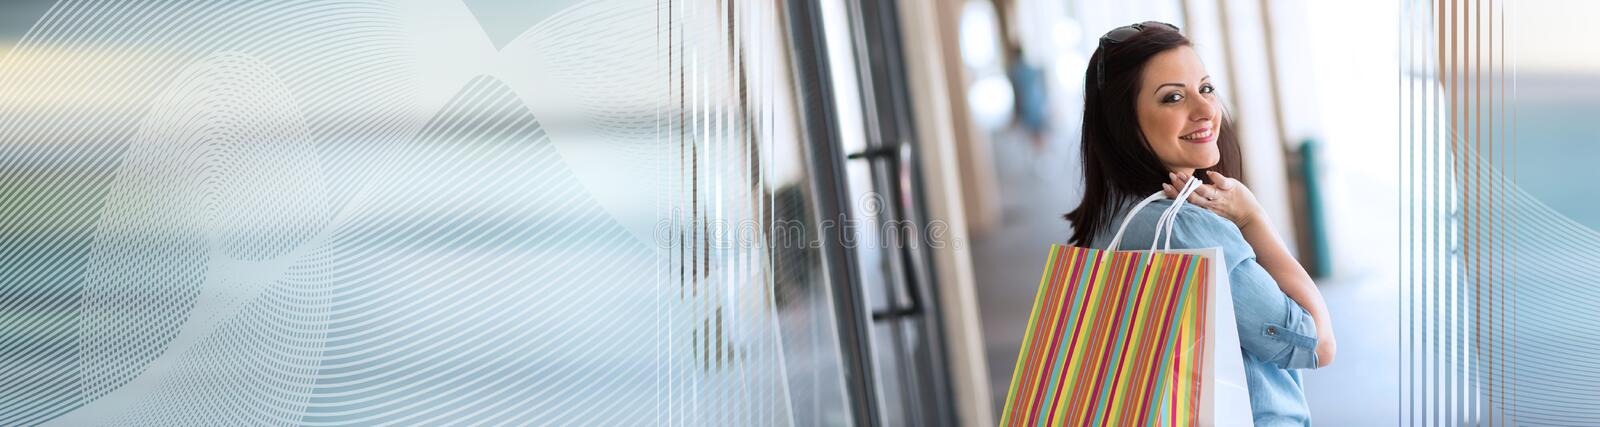 Young woman walking with shopping bags in hand. panoramic banner stock images